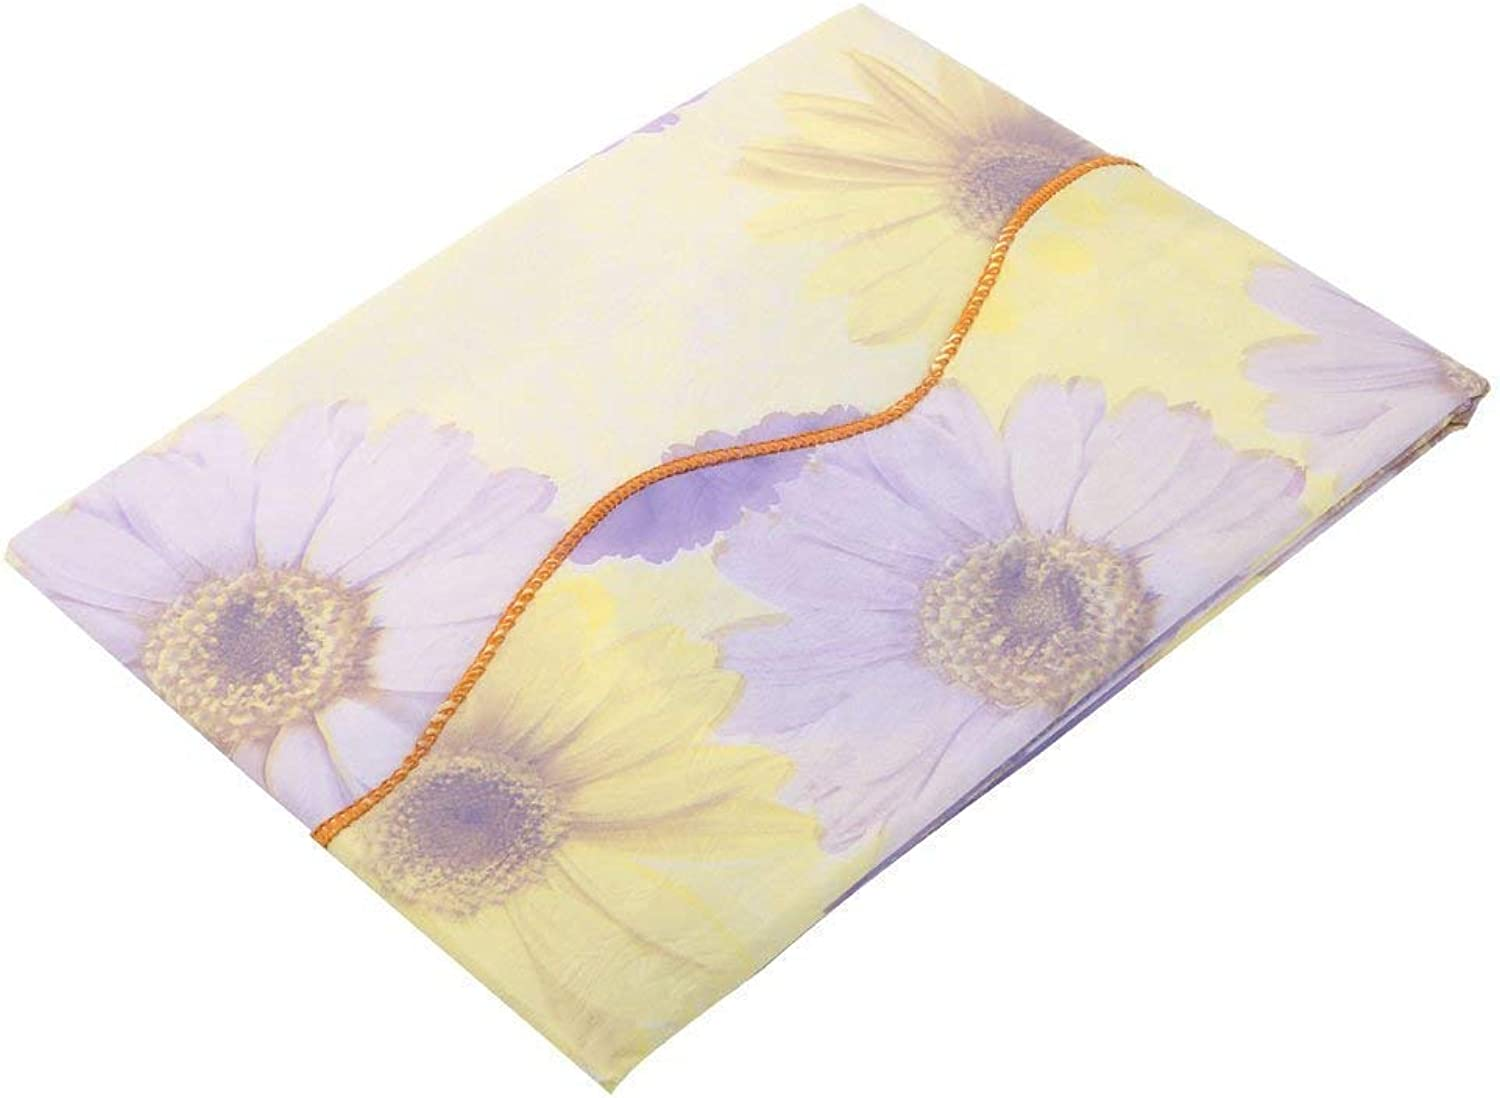 Sunflower Pattern Home Picnic Water Resistant Oil-Proof Tablecloth Table Cloth Cover